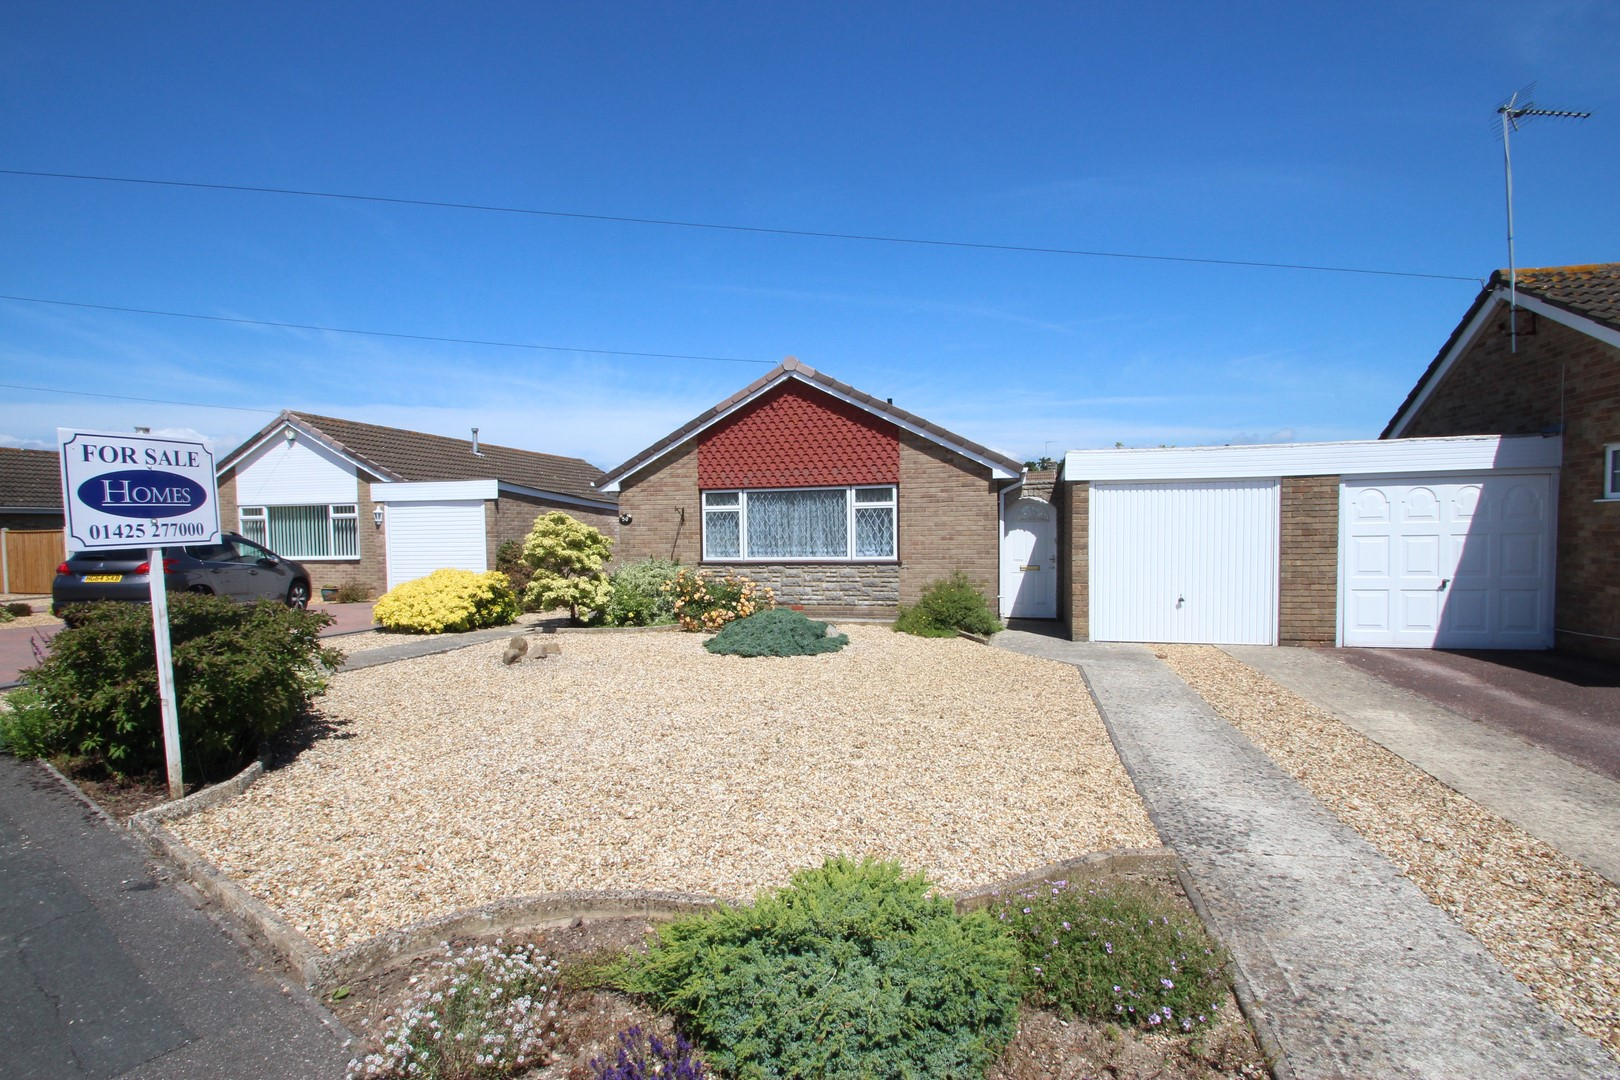 2 Bedroom Bungalow in Mudeford